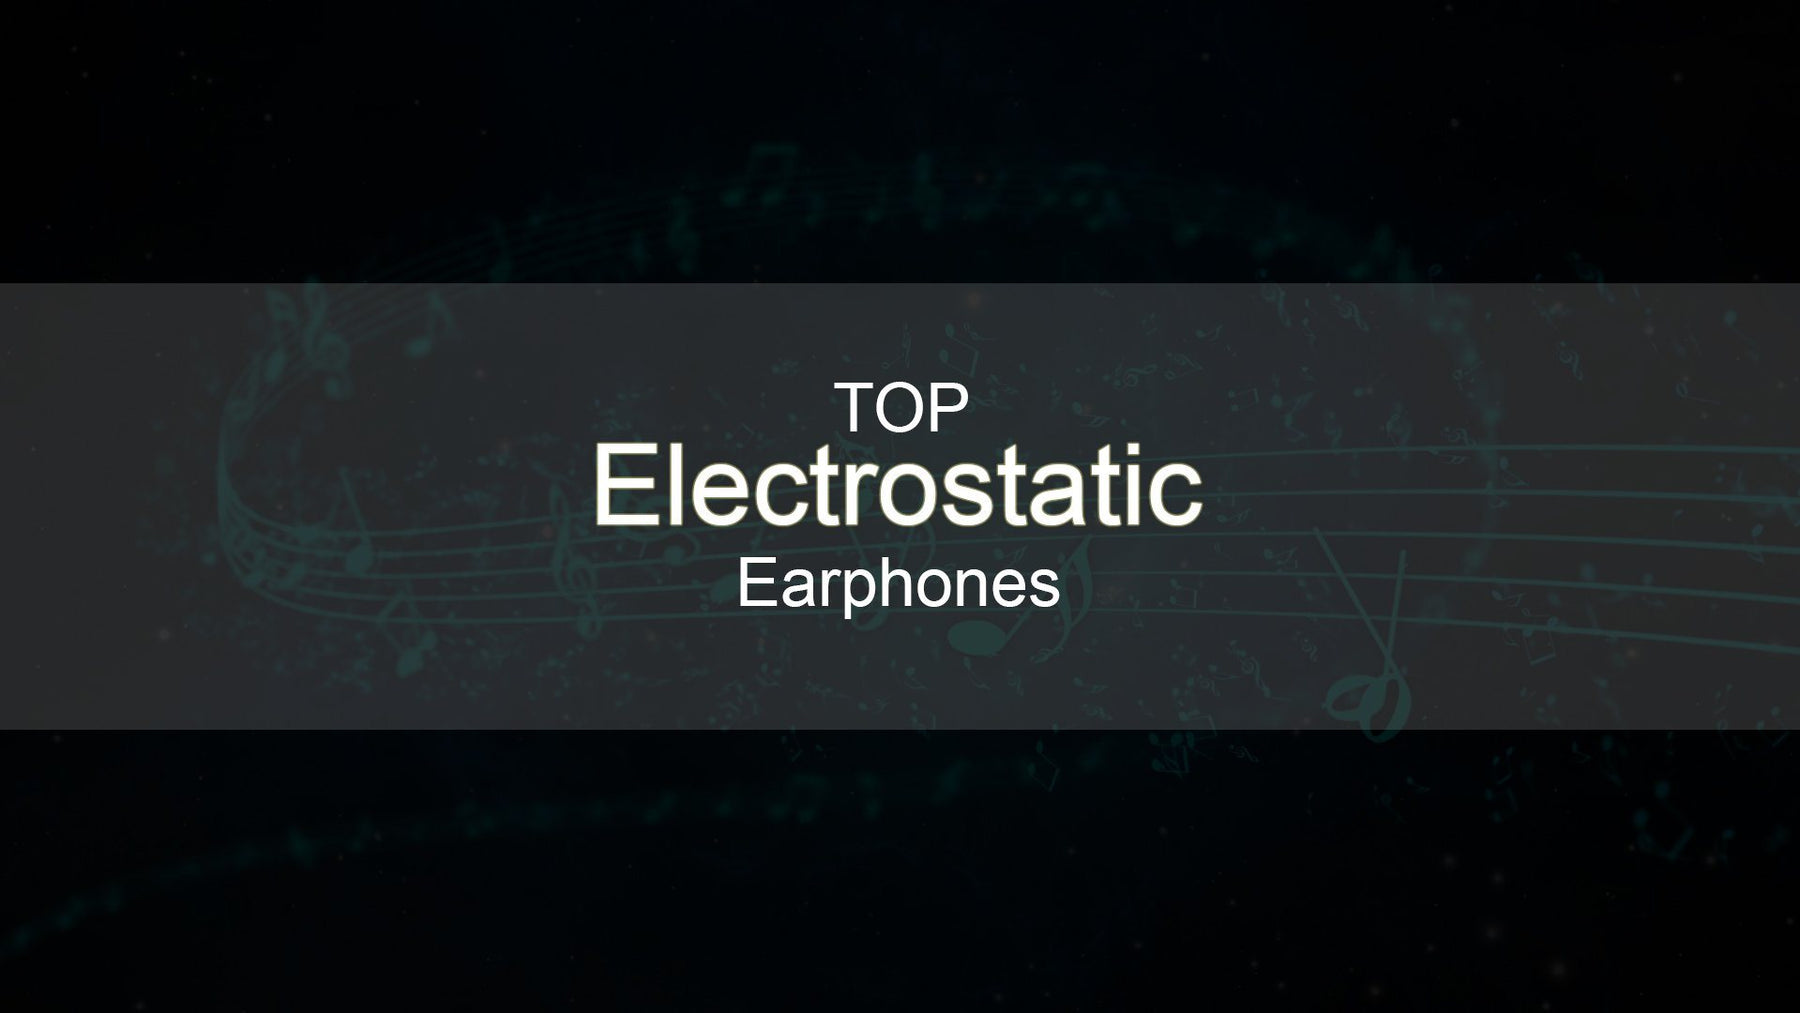 Best Earphones with Electrostatic Drivers!!!